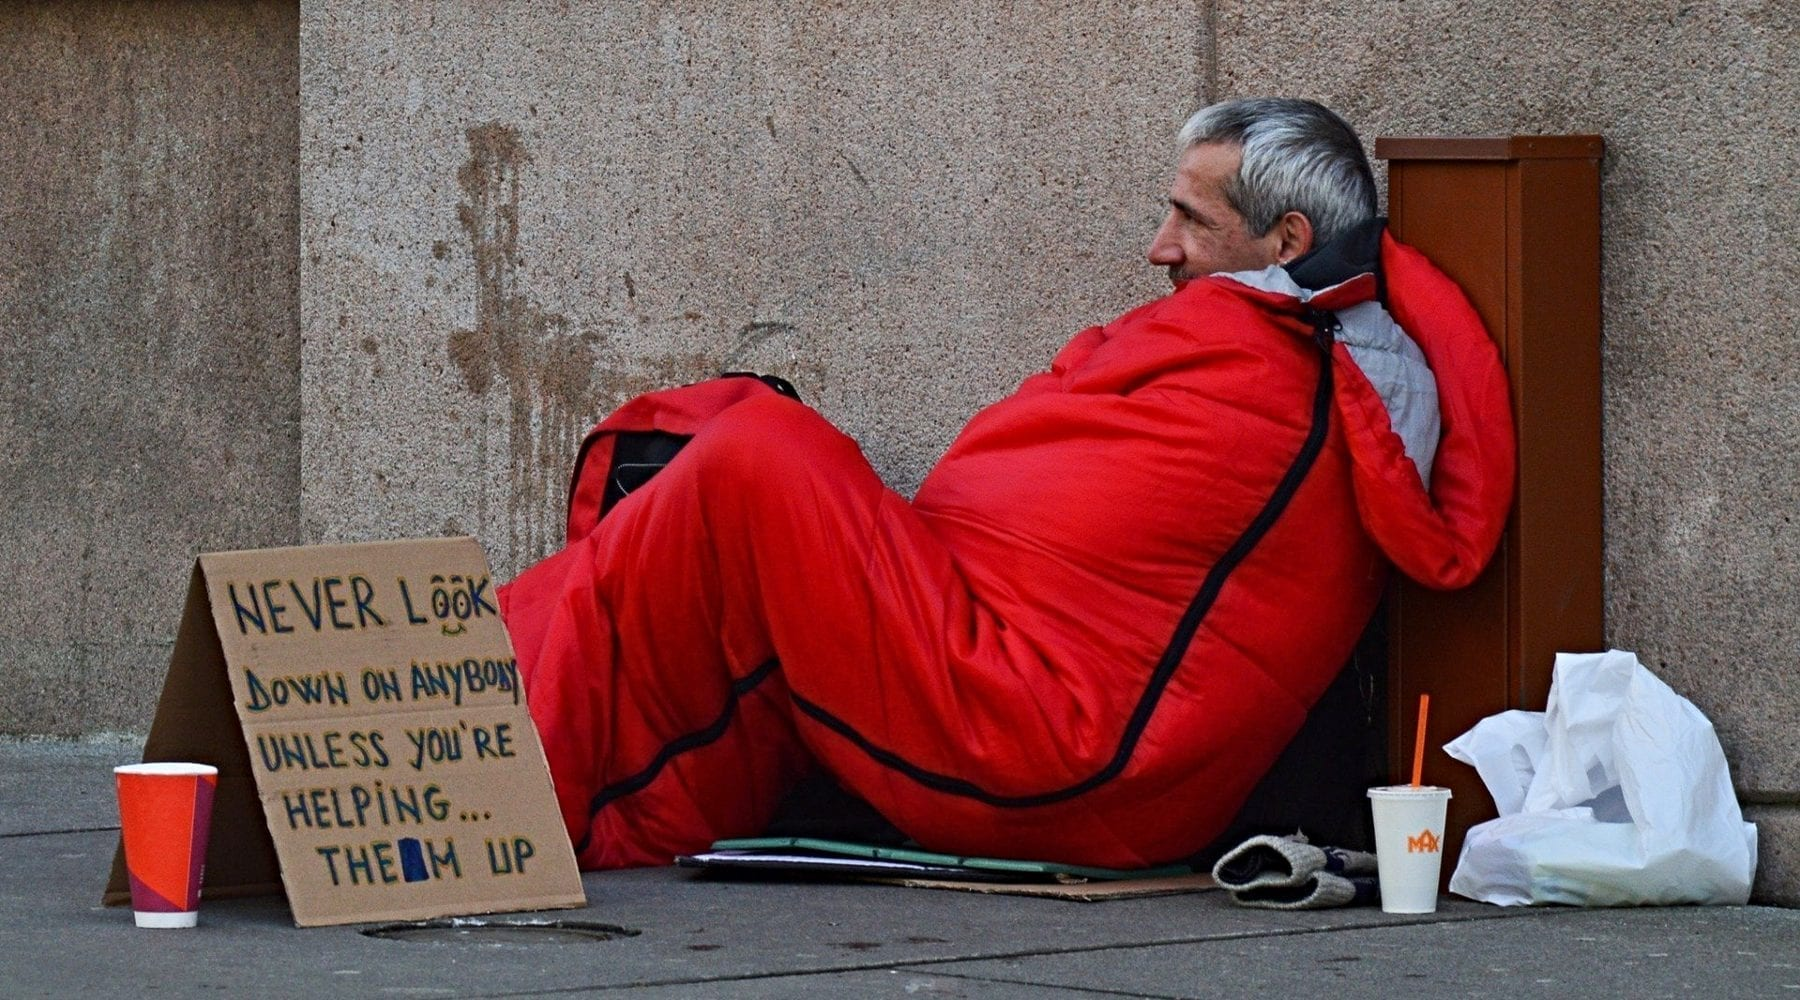 More Than Half-Million Homeless in 2019 Real-Time Count